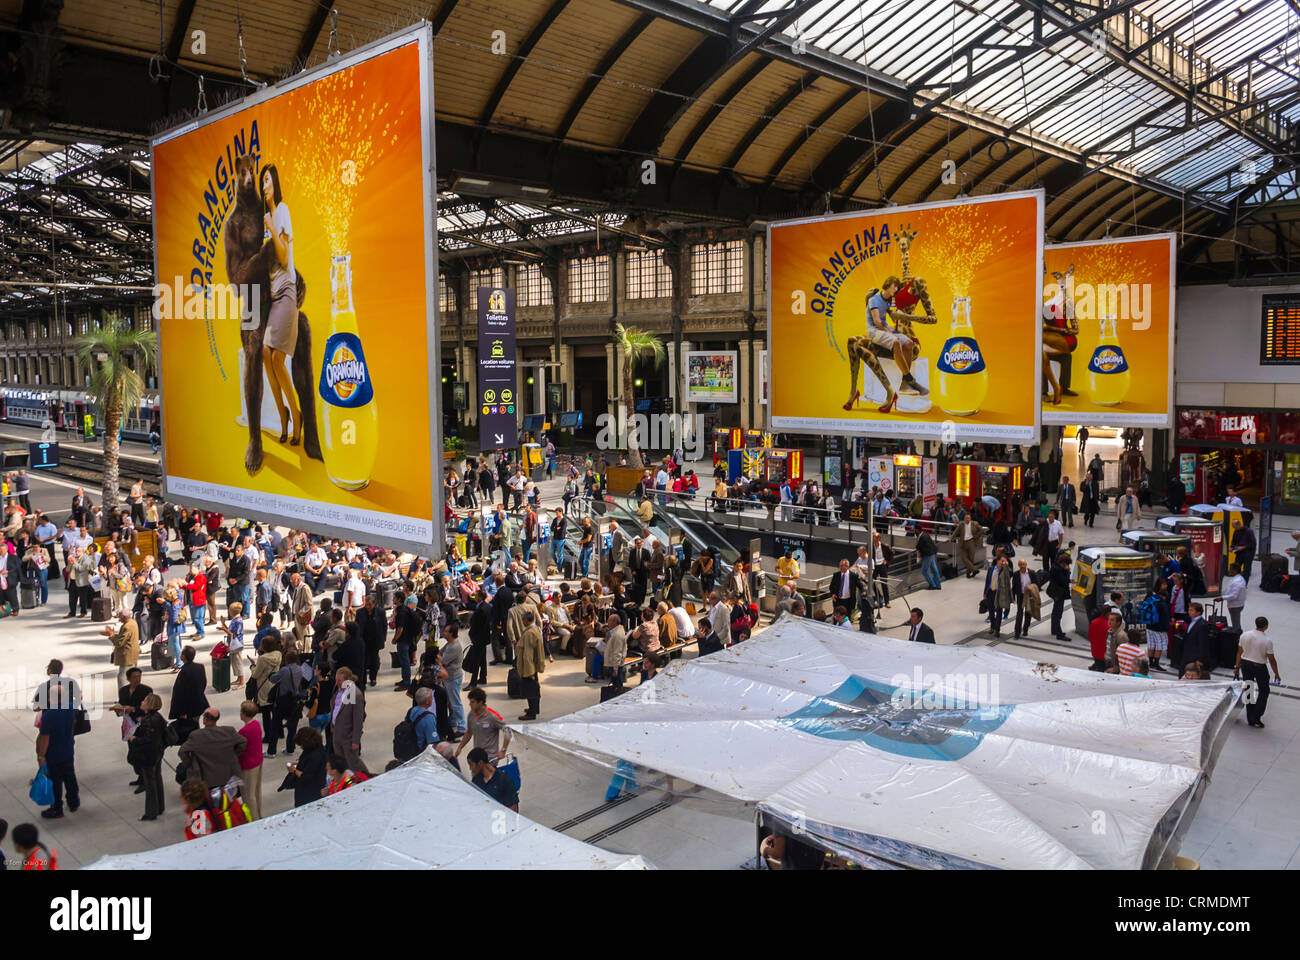 "Paris, France, High Angle, Aerial View of Crowds, French Soft drink Advertising Billboards in Train Station, ""Gare Stock Photo"